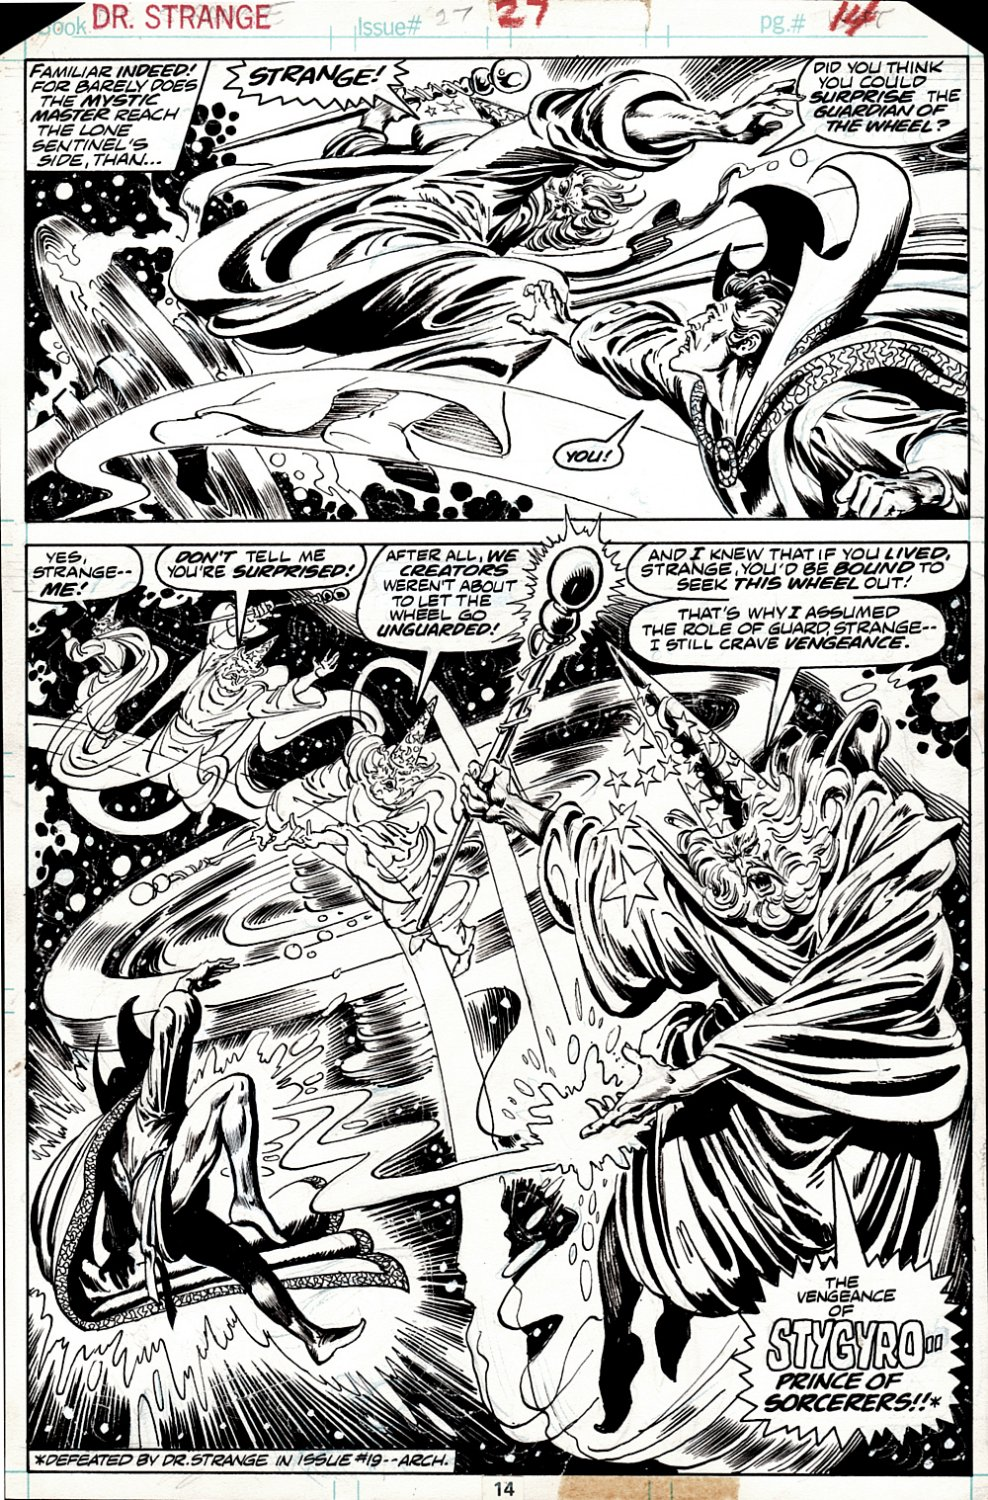 Doctor Strange #27 p 14 SEMI-SPLASH (GREAT BATTLE SPLASH!  DR. STRANGE BATTLES THE WIZARD: STYGYRO!) 1977